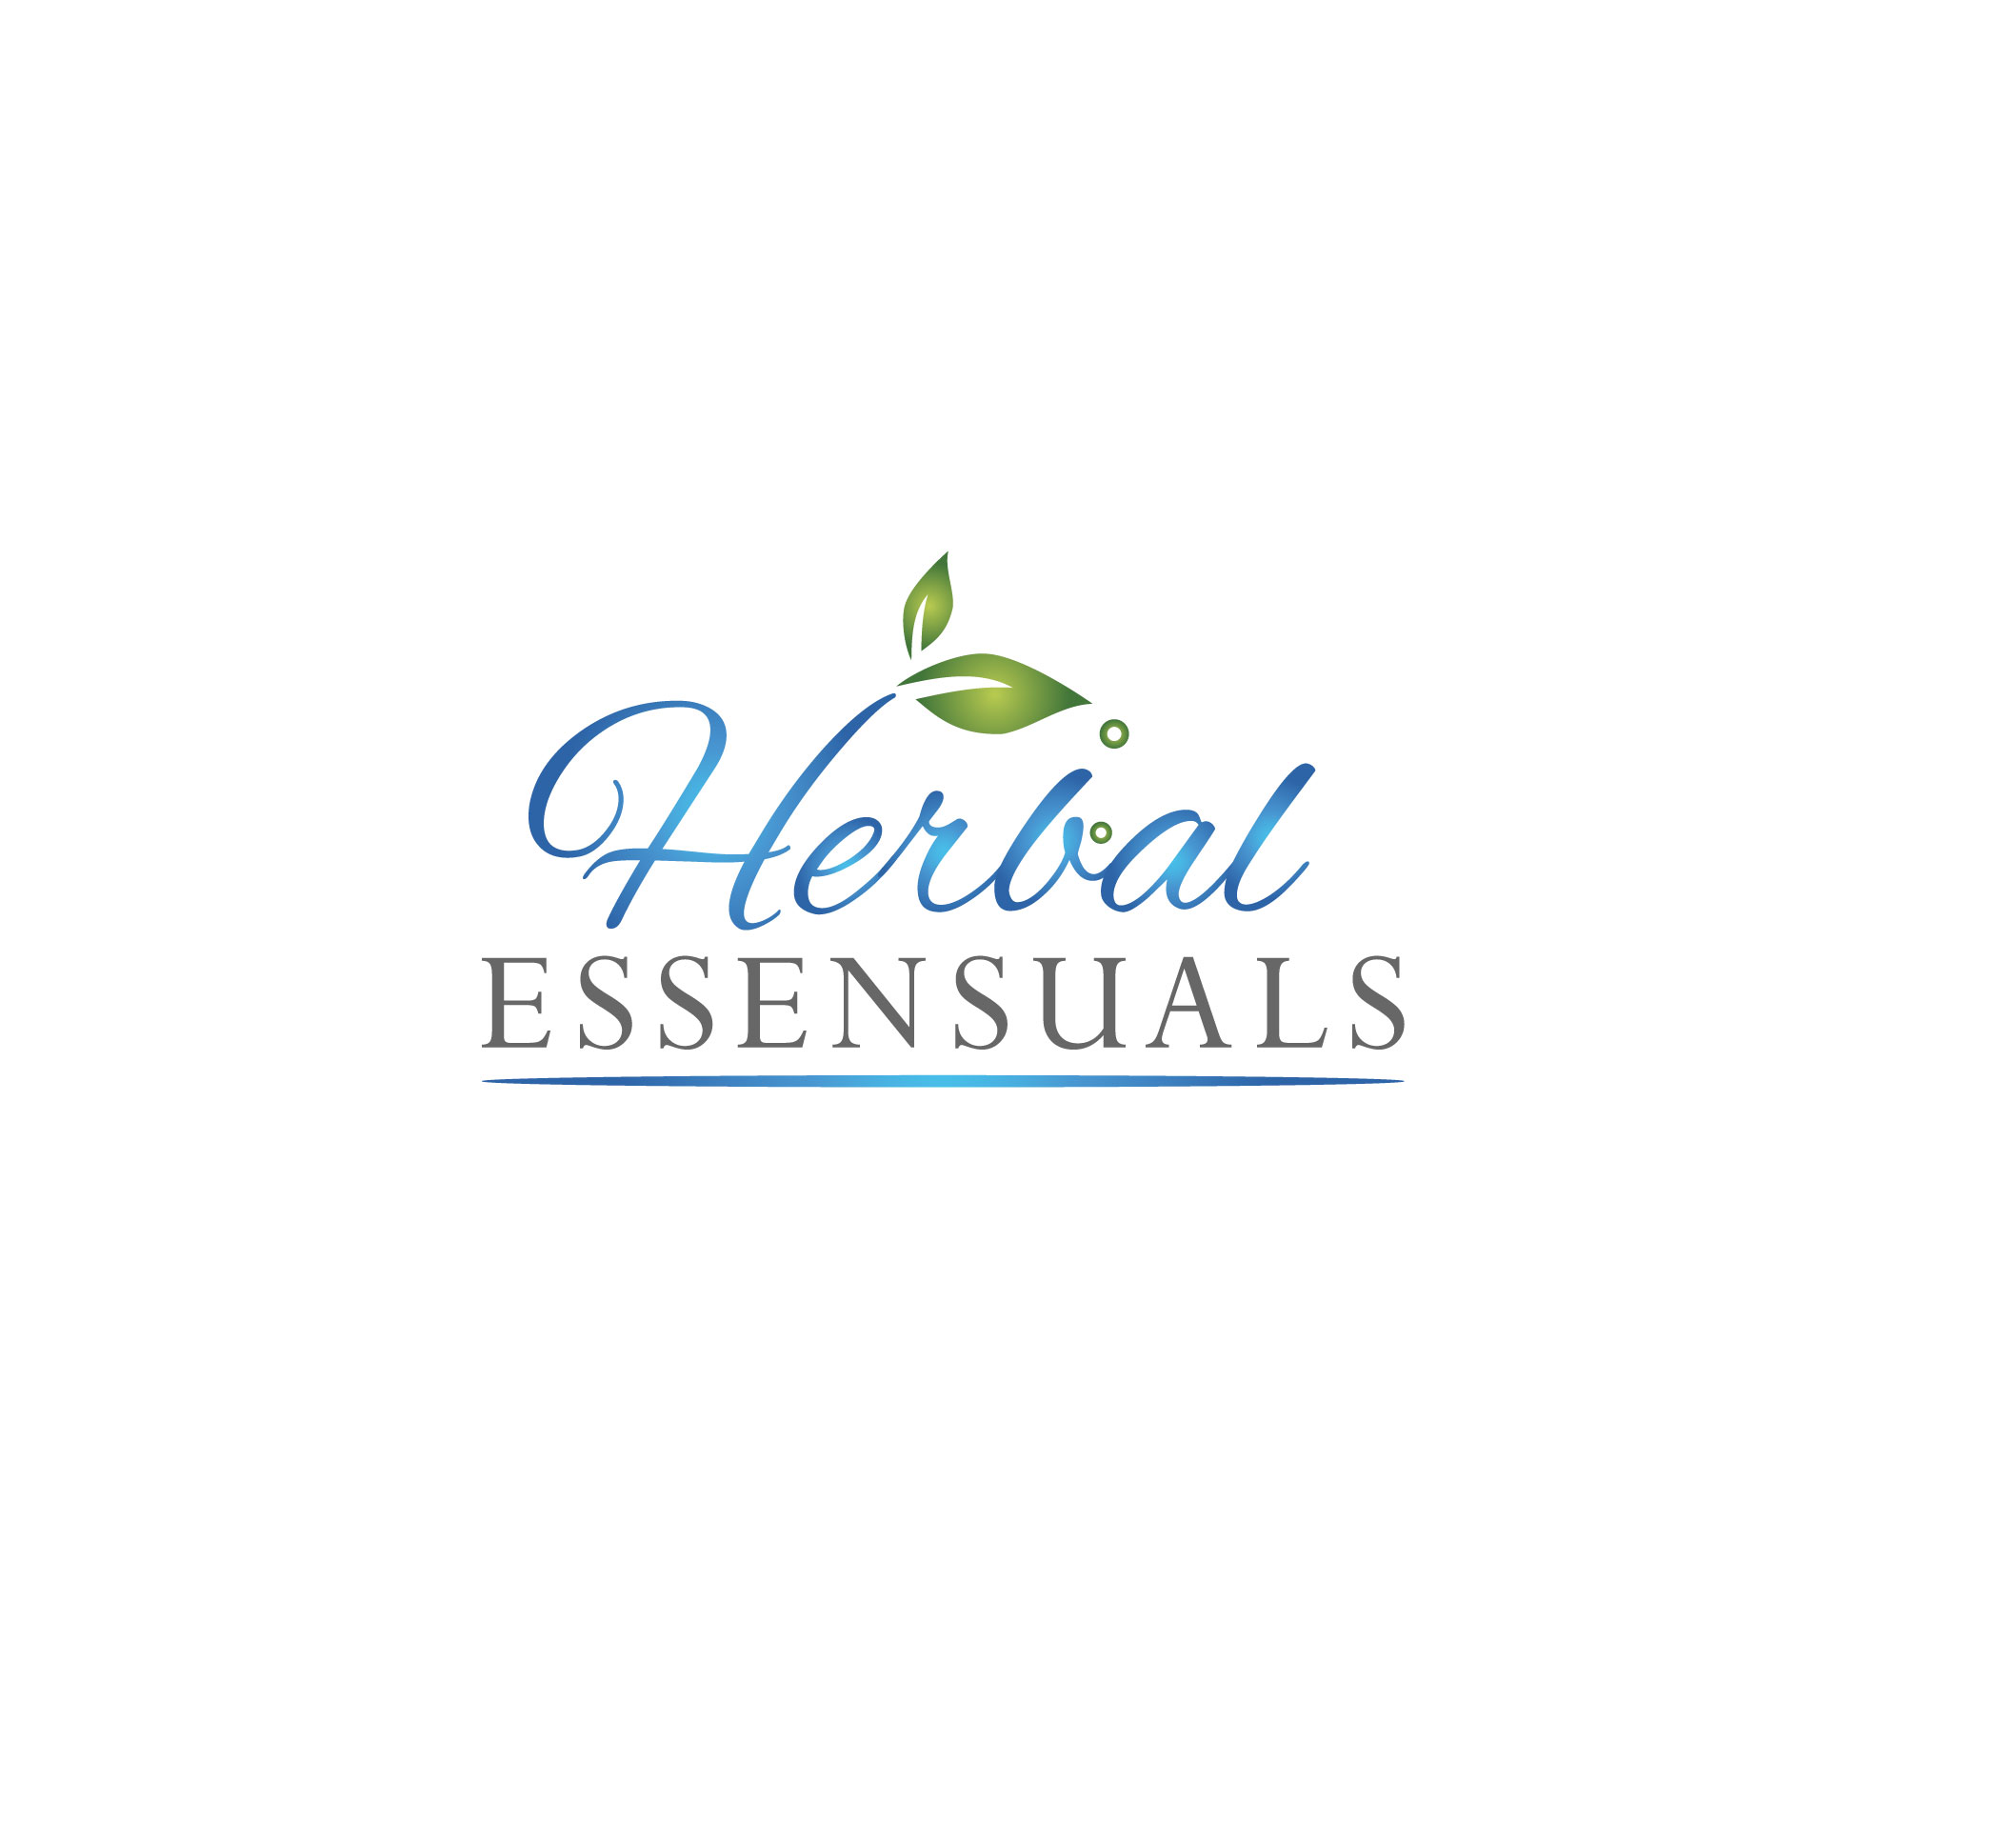 Logo Design by Darina Dimitrova - Entry No. 77 in the Logo Design Contest Captivating Logo Design for Herbal Essensuals.